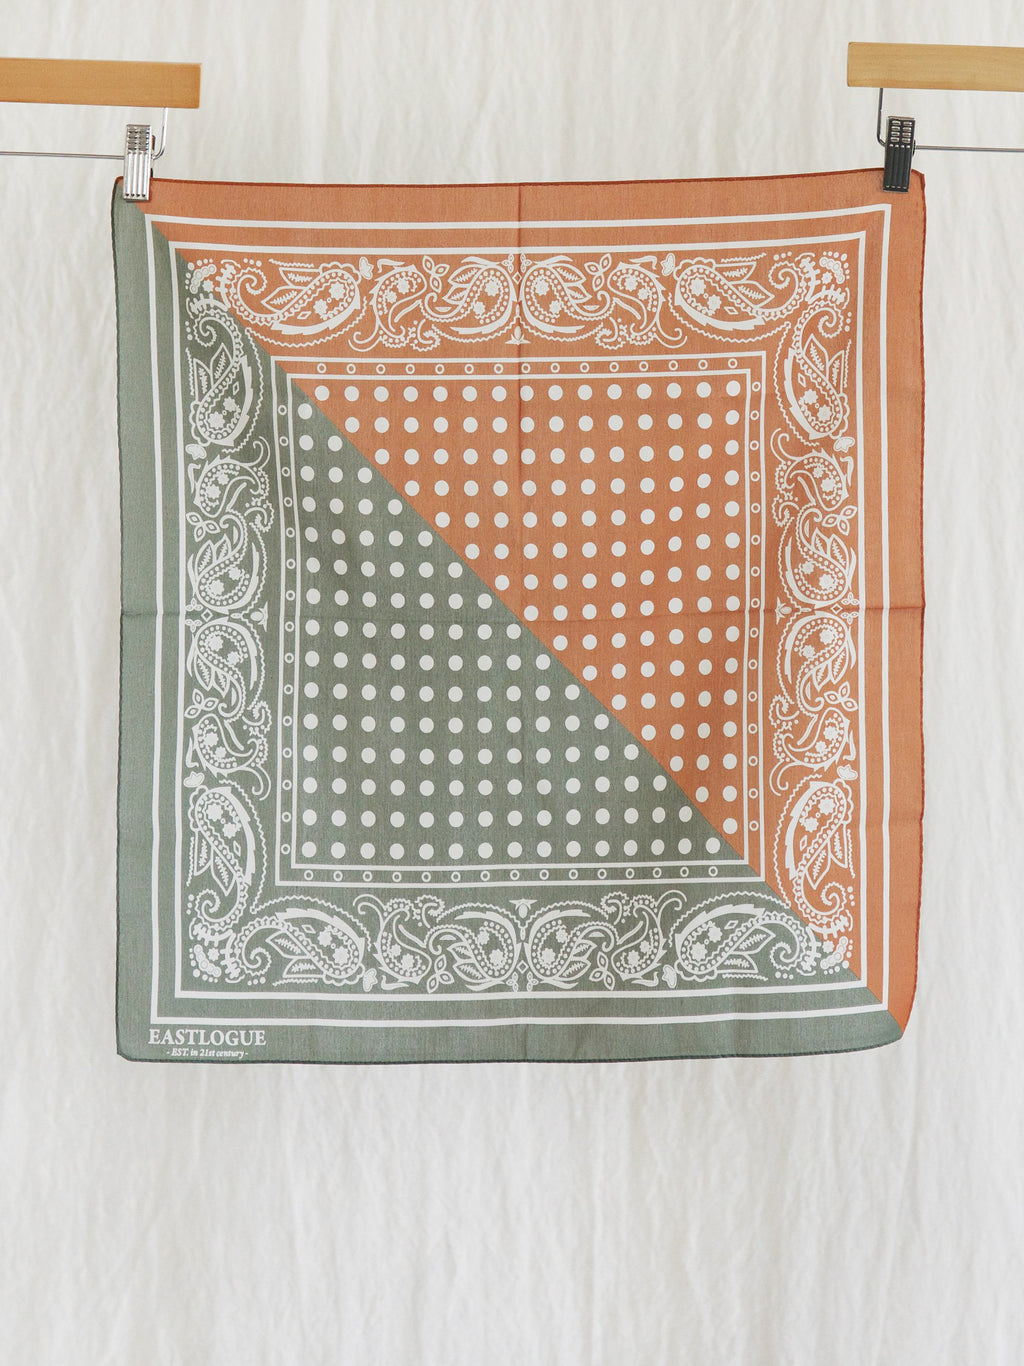 Namu Shop - Eastlogue Silk Bandana - Green & Orange